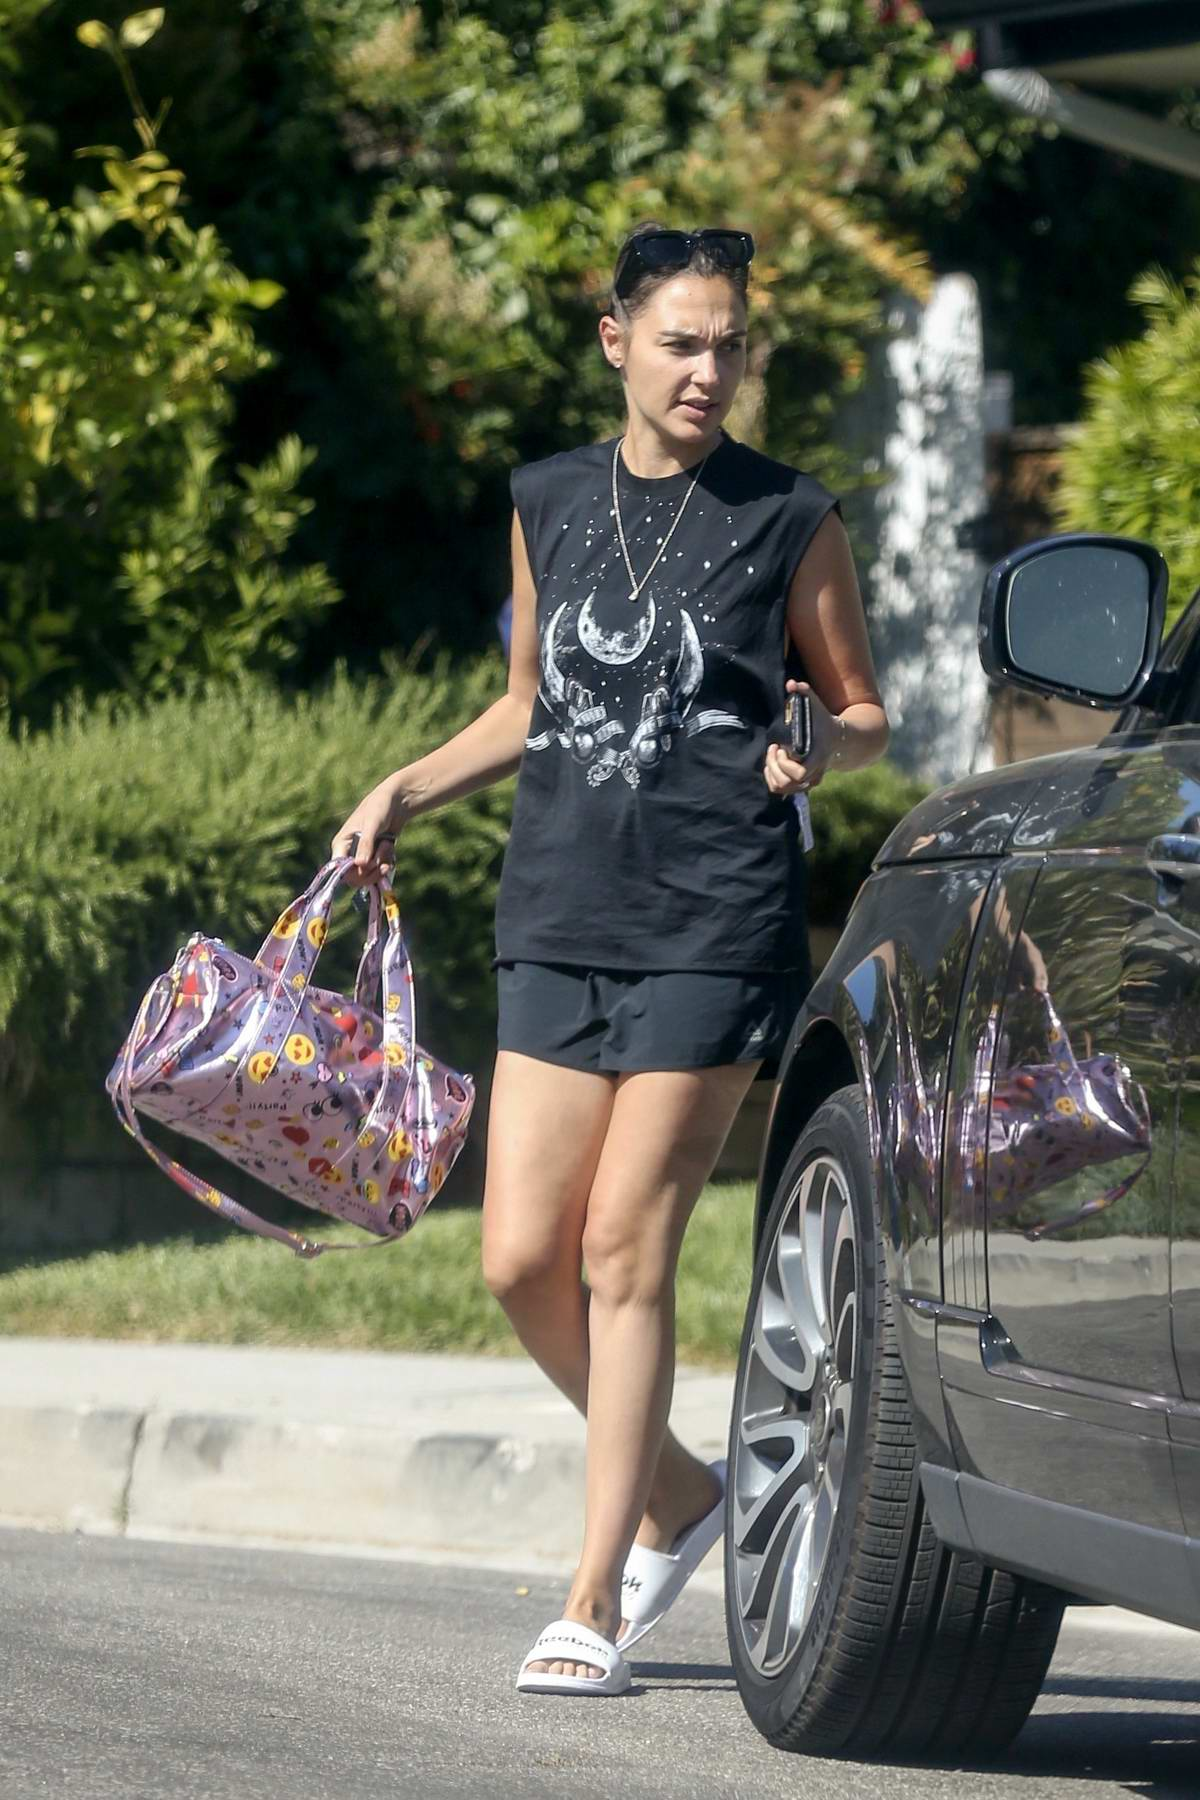 Gal Gadot keeps things casual in a tank top and shorts while heading out in Los Angeles